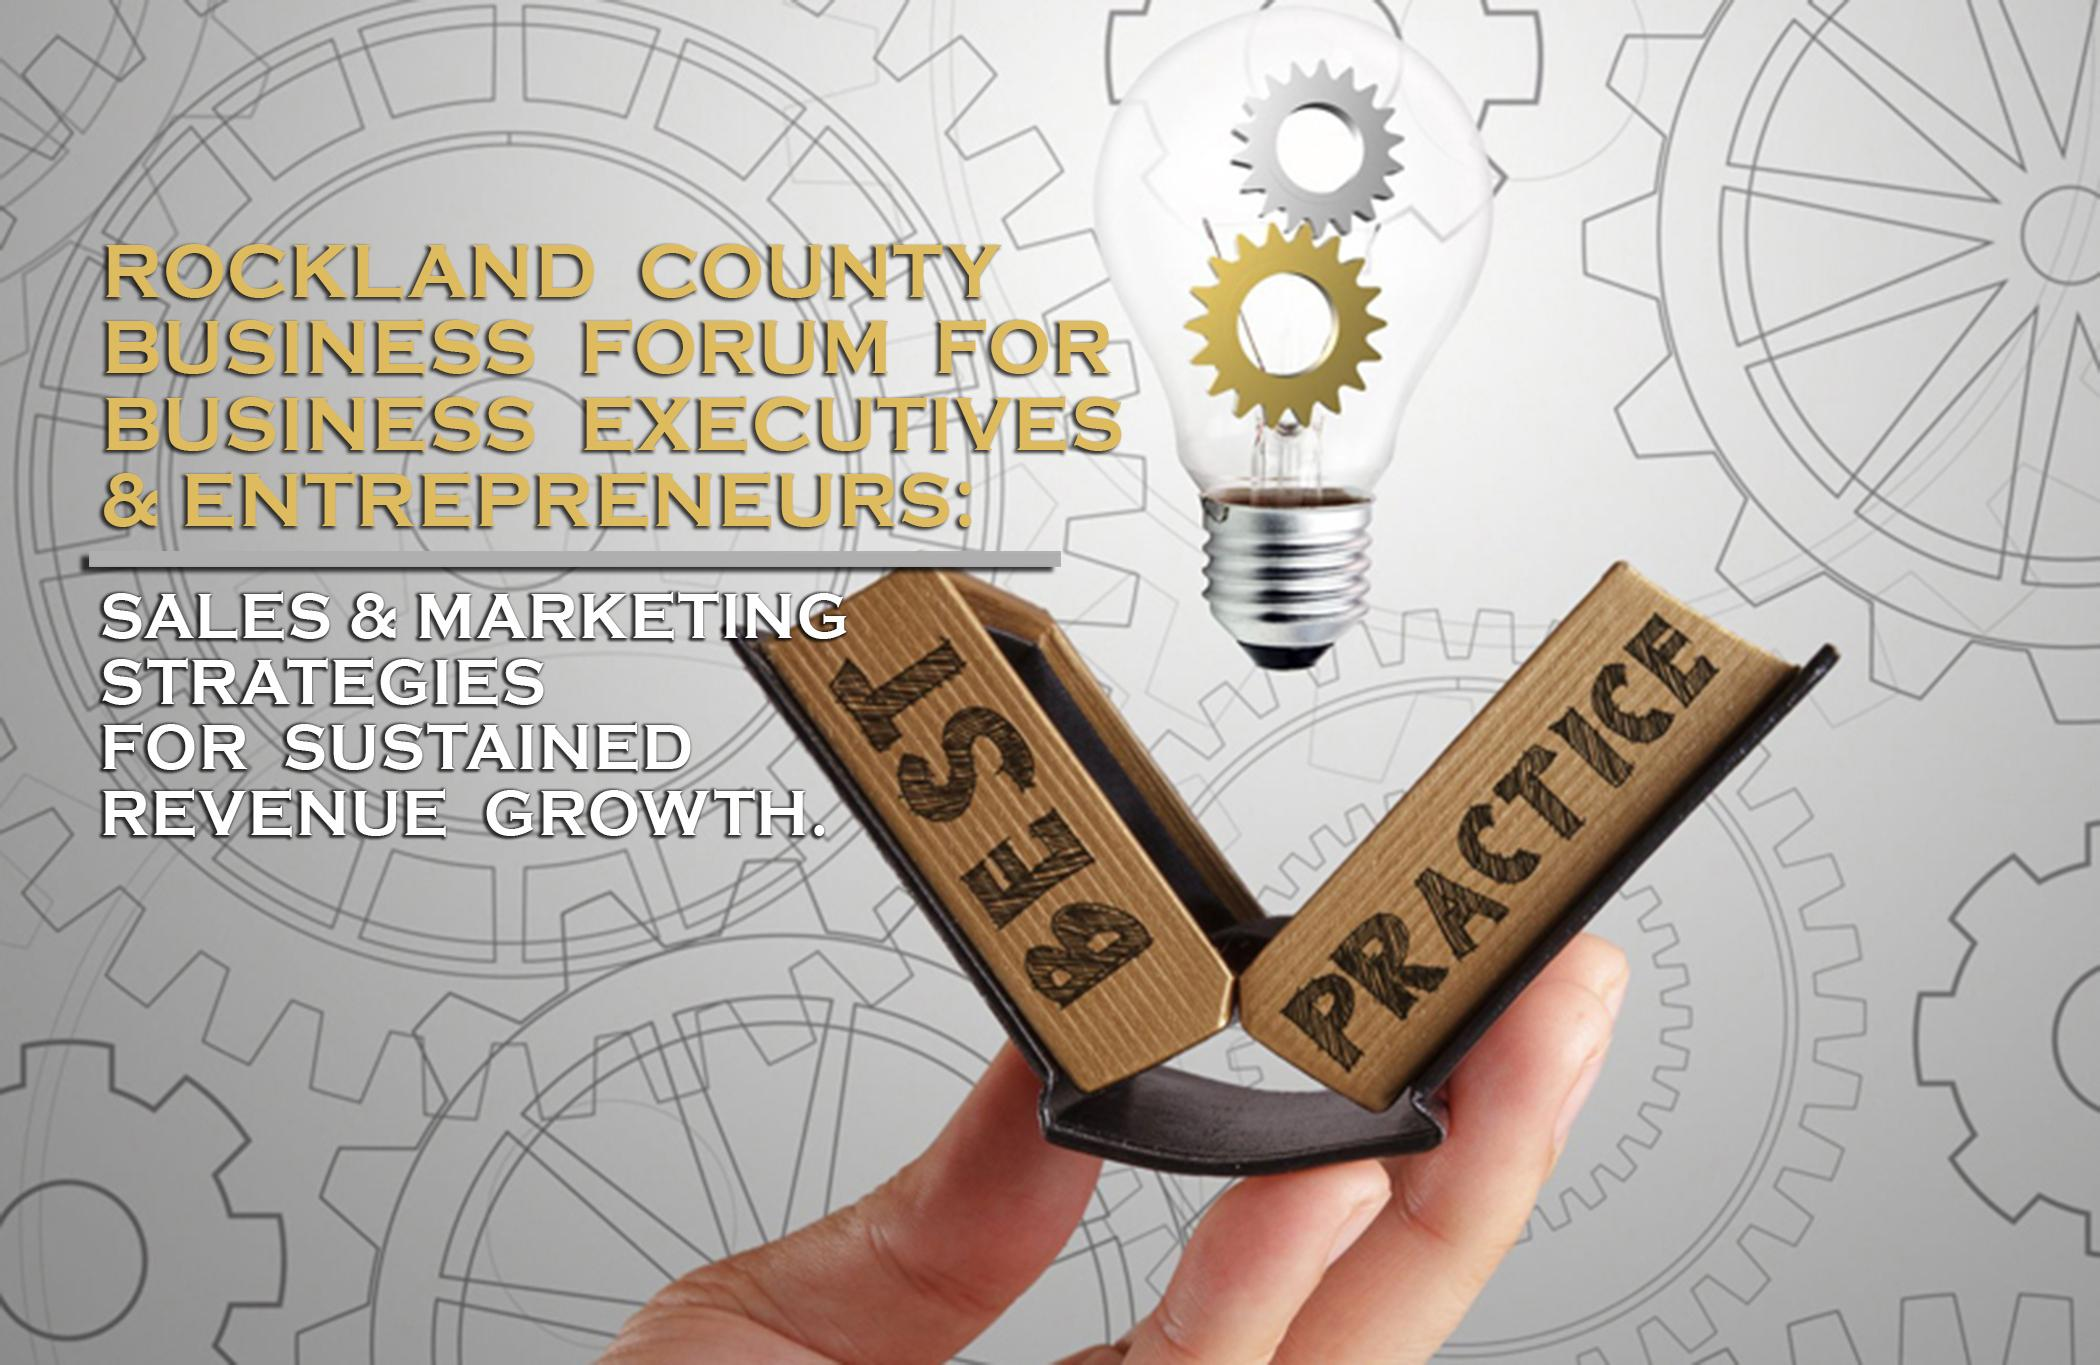 Goldkap Rockland County Business Forum- Sales & Marketing Strategies For Sustained Revenue Growth